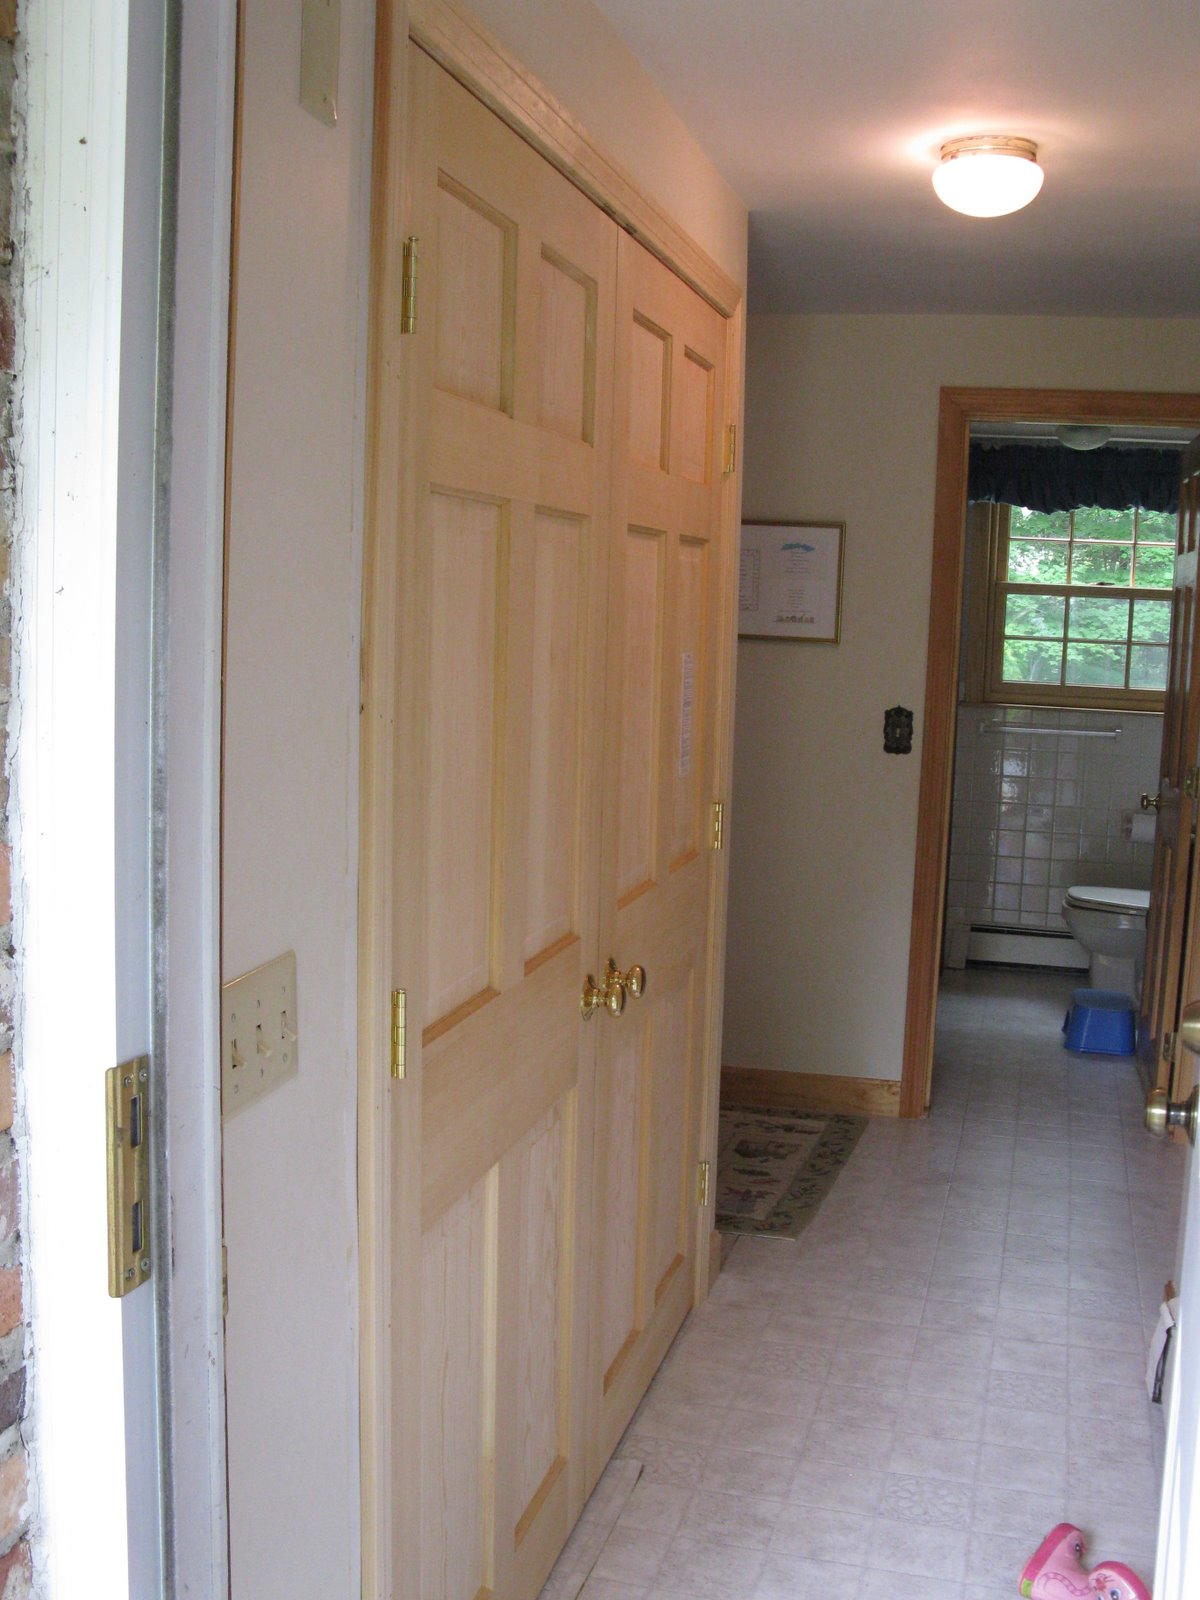 we interior internal install buy doors sliding it you barn online can door for